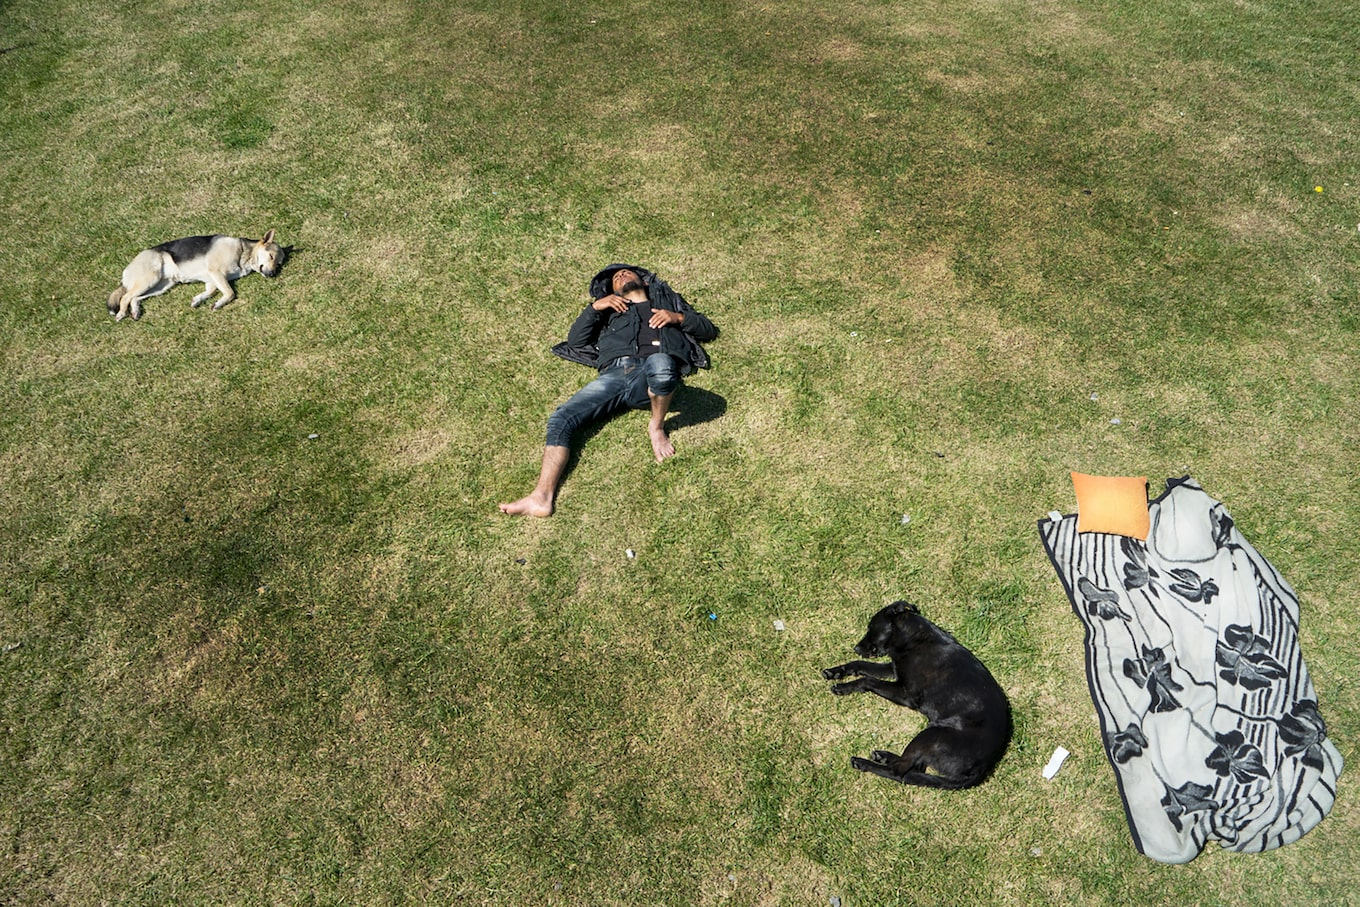 murat-pulat-sony-alpha-7II-man-asleep-in-sunny-field-with-dogs